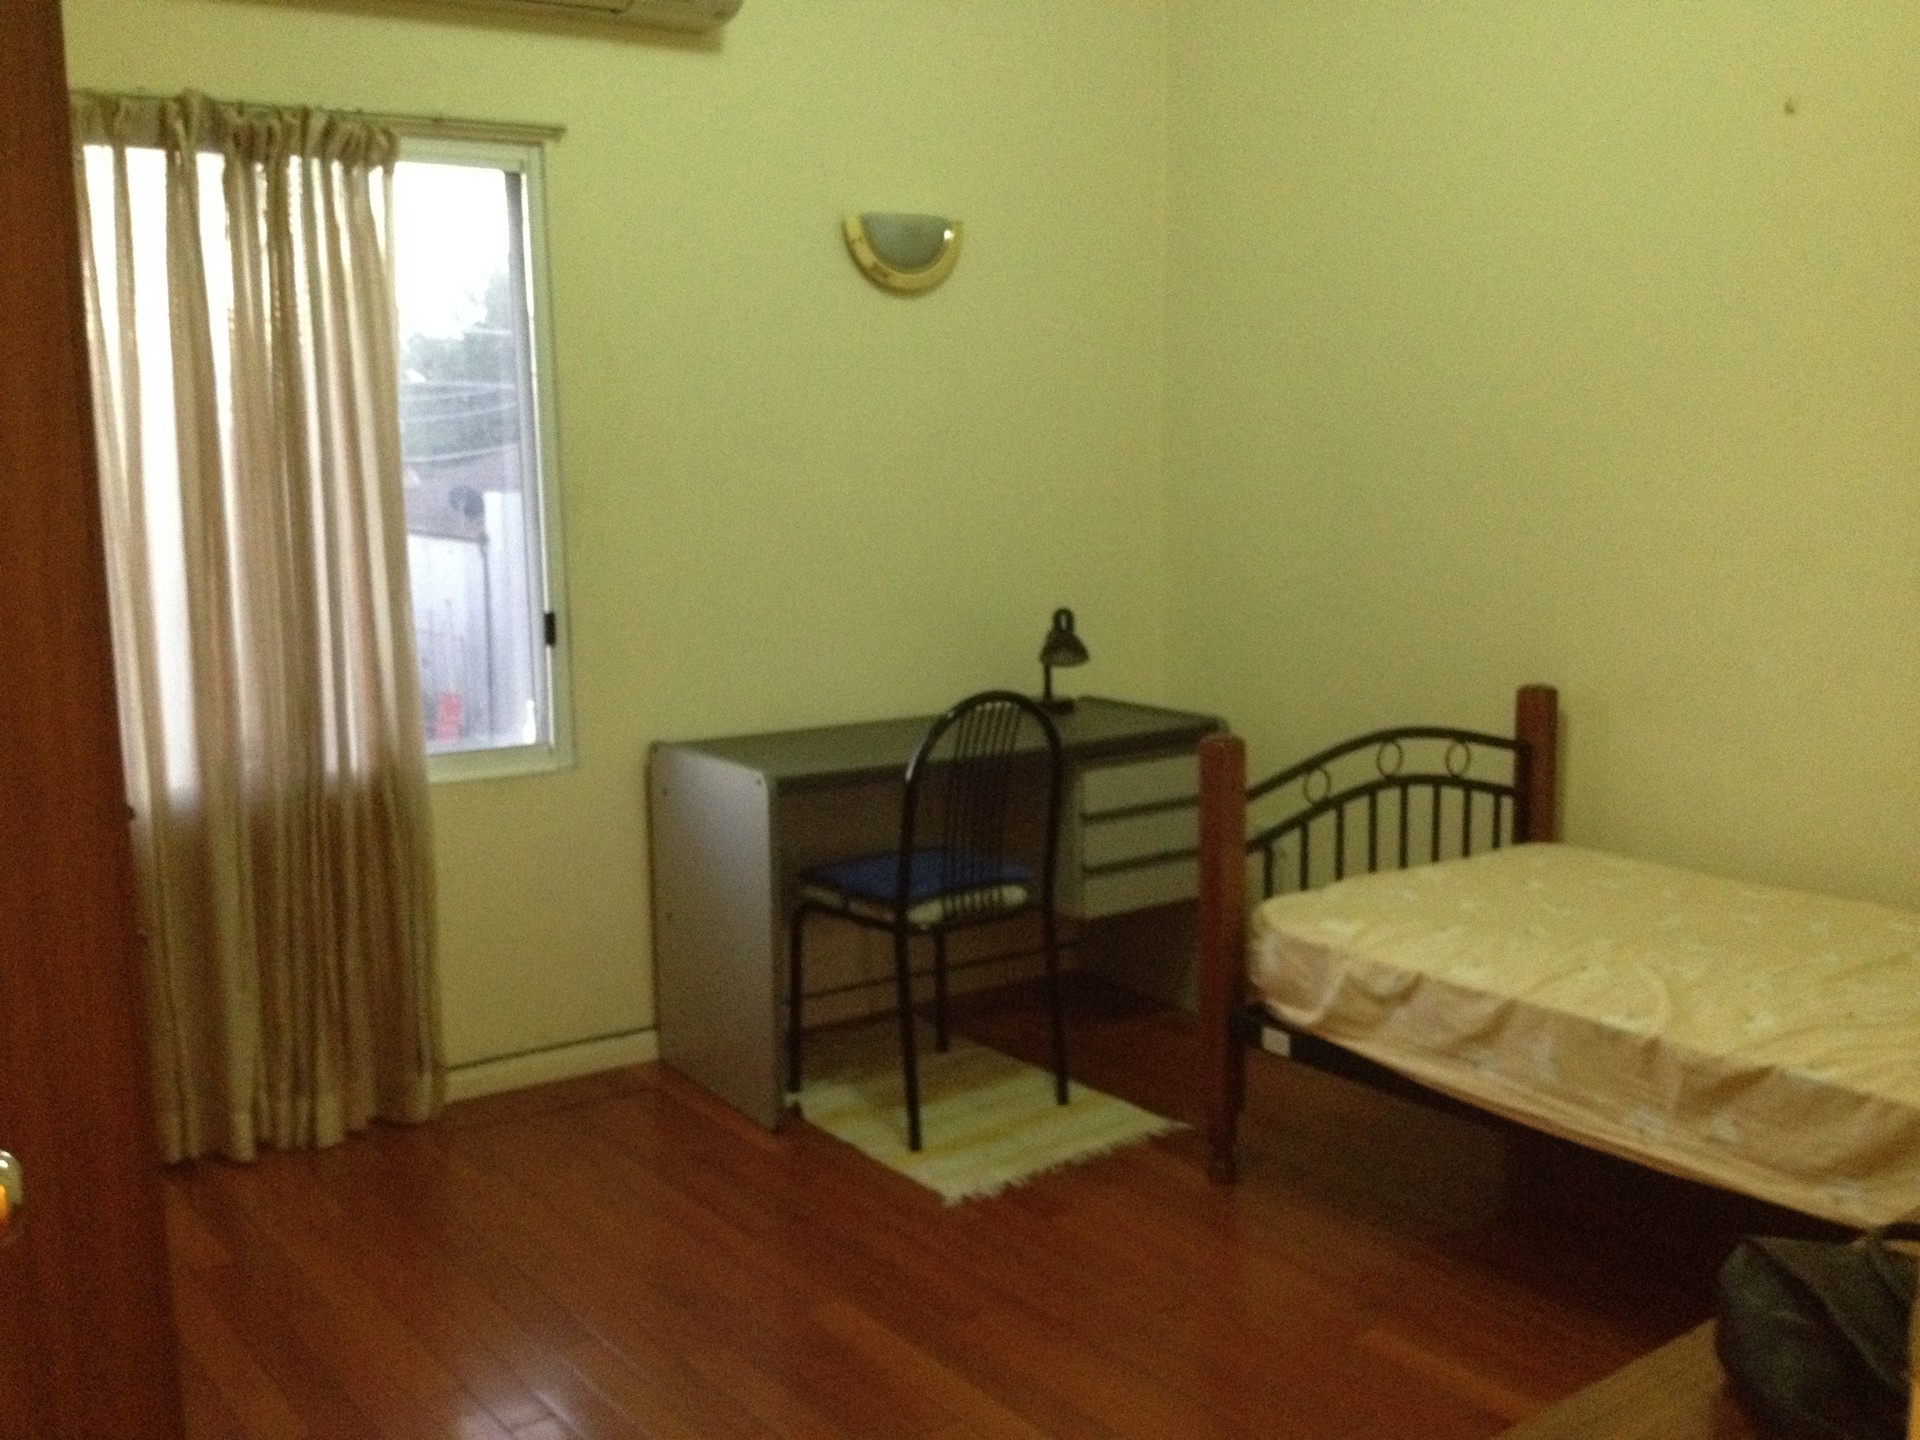 large-sunny-room-for-rent-sydney-4214f98c40187bf112d9e5ce59658432